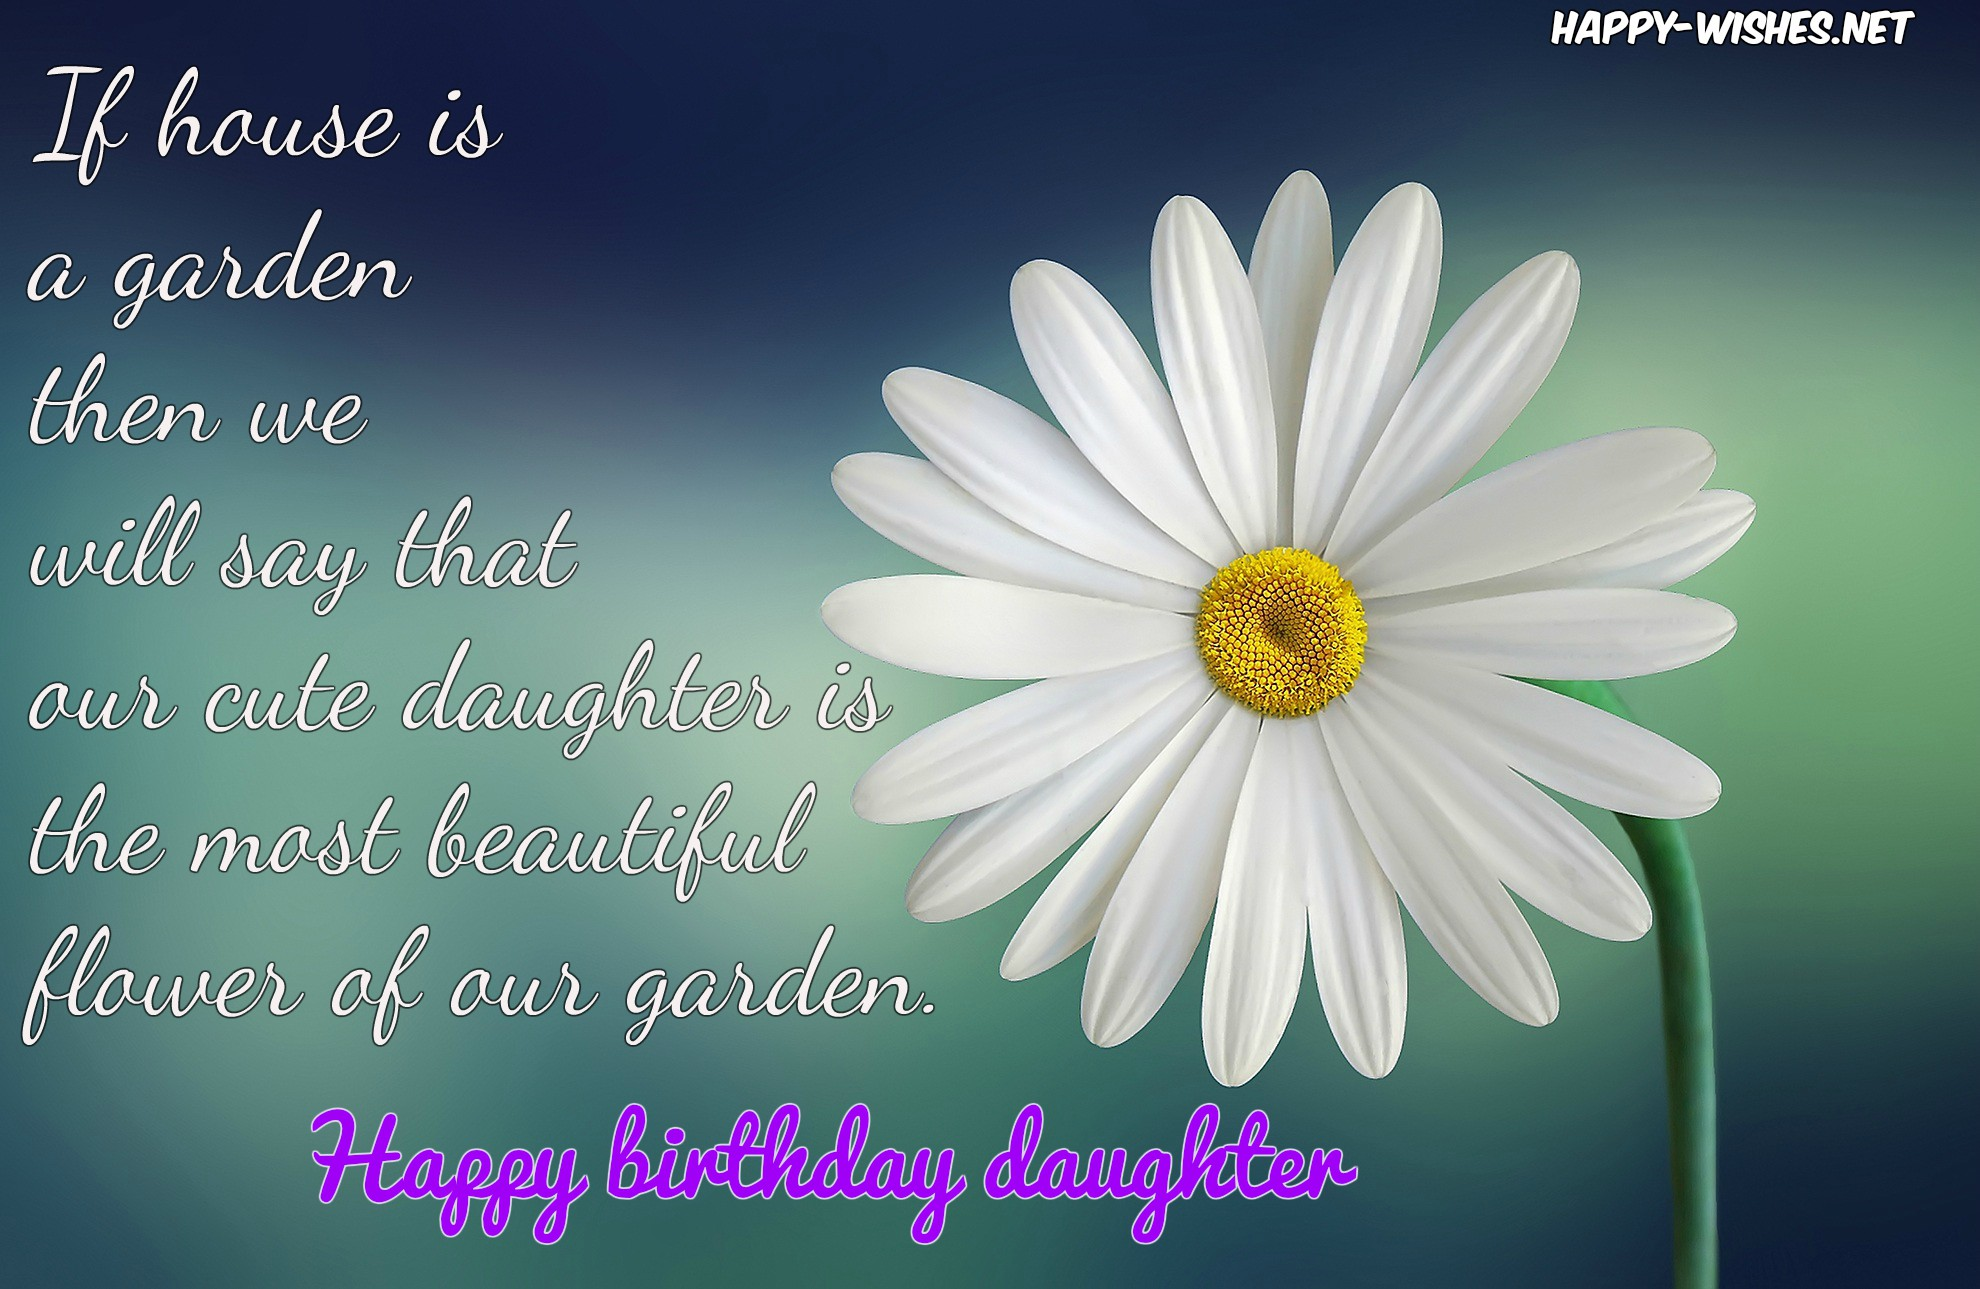 Happy-birthday-meme-for daughter